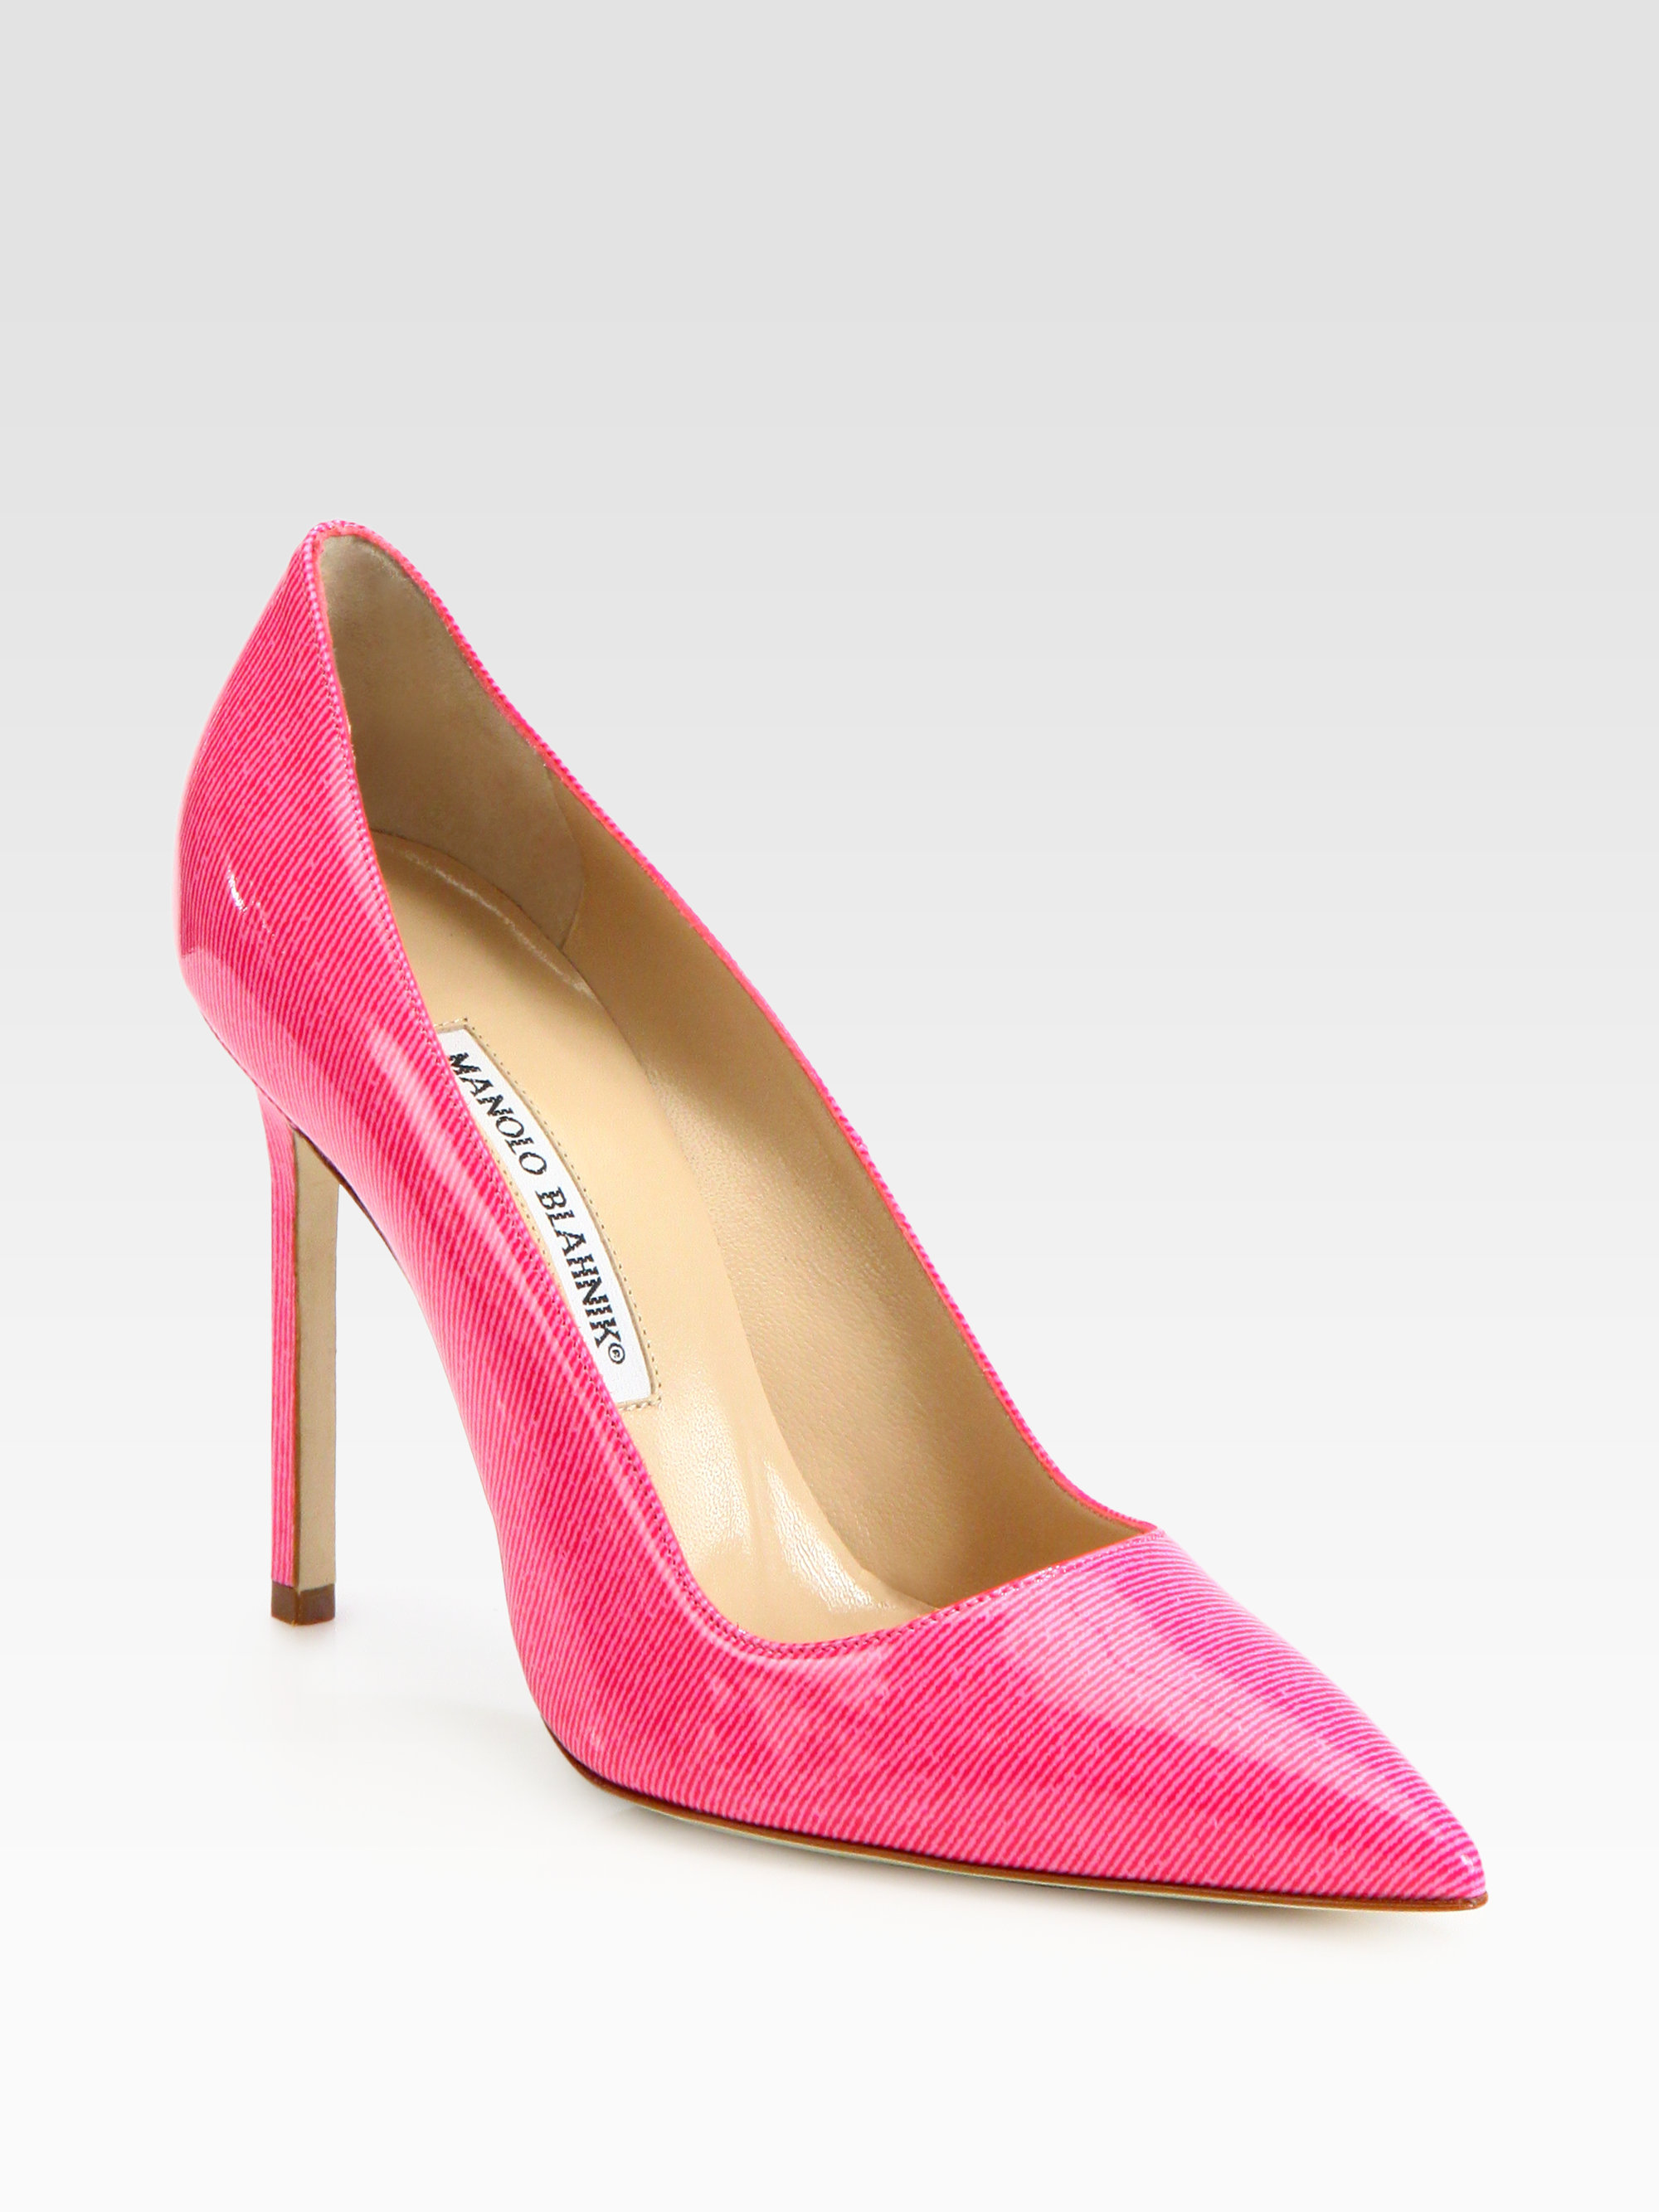 manolo blahnik bb denimprint patent leather pumps in pink